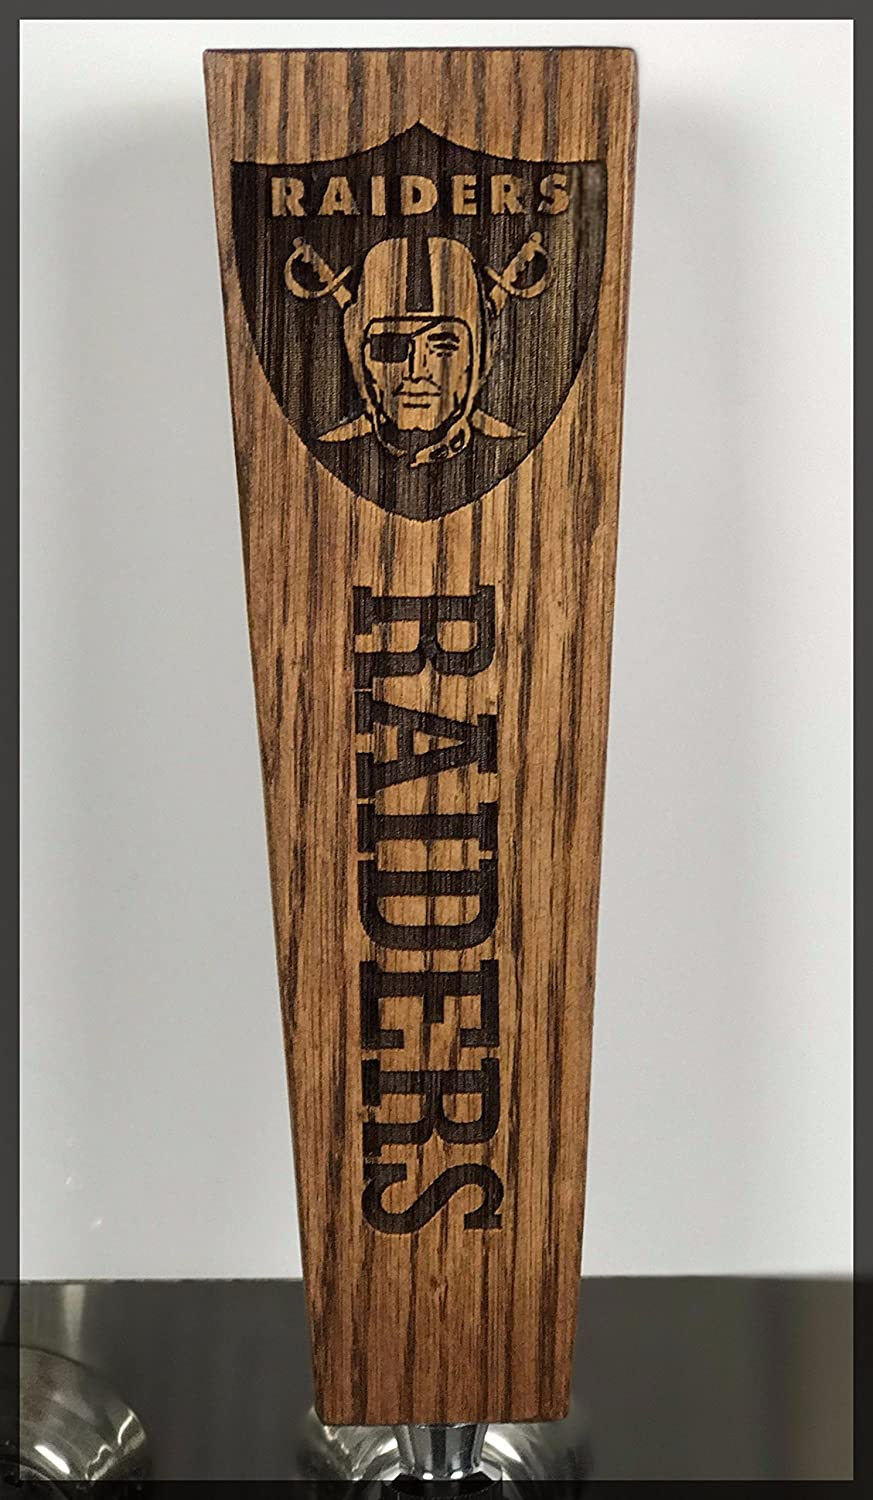 Raiders Solid Oak Engraved Tap Handle Rusted Kettle Brewing